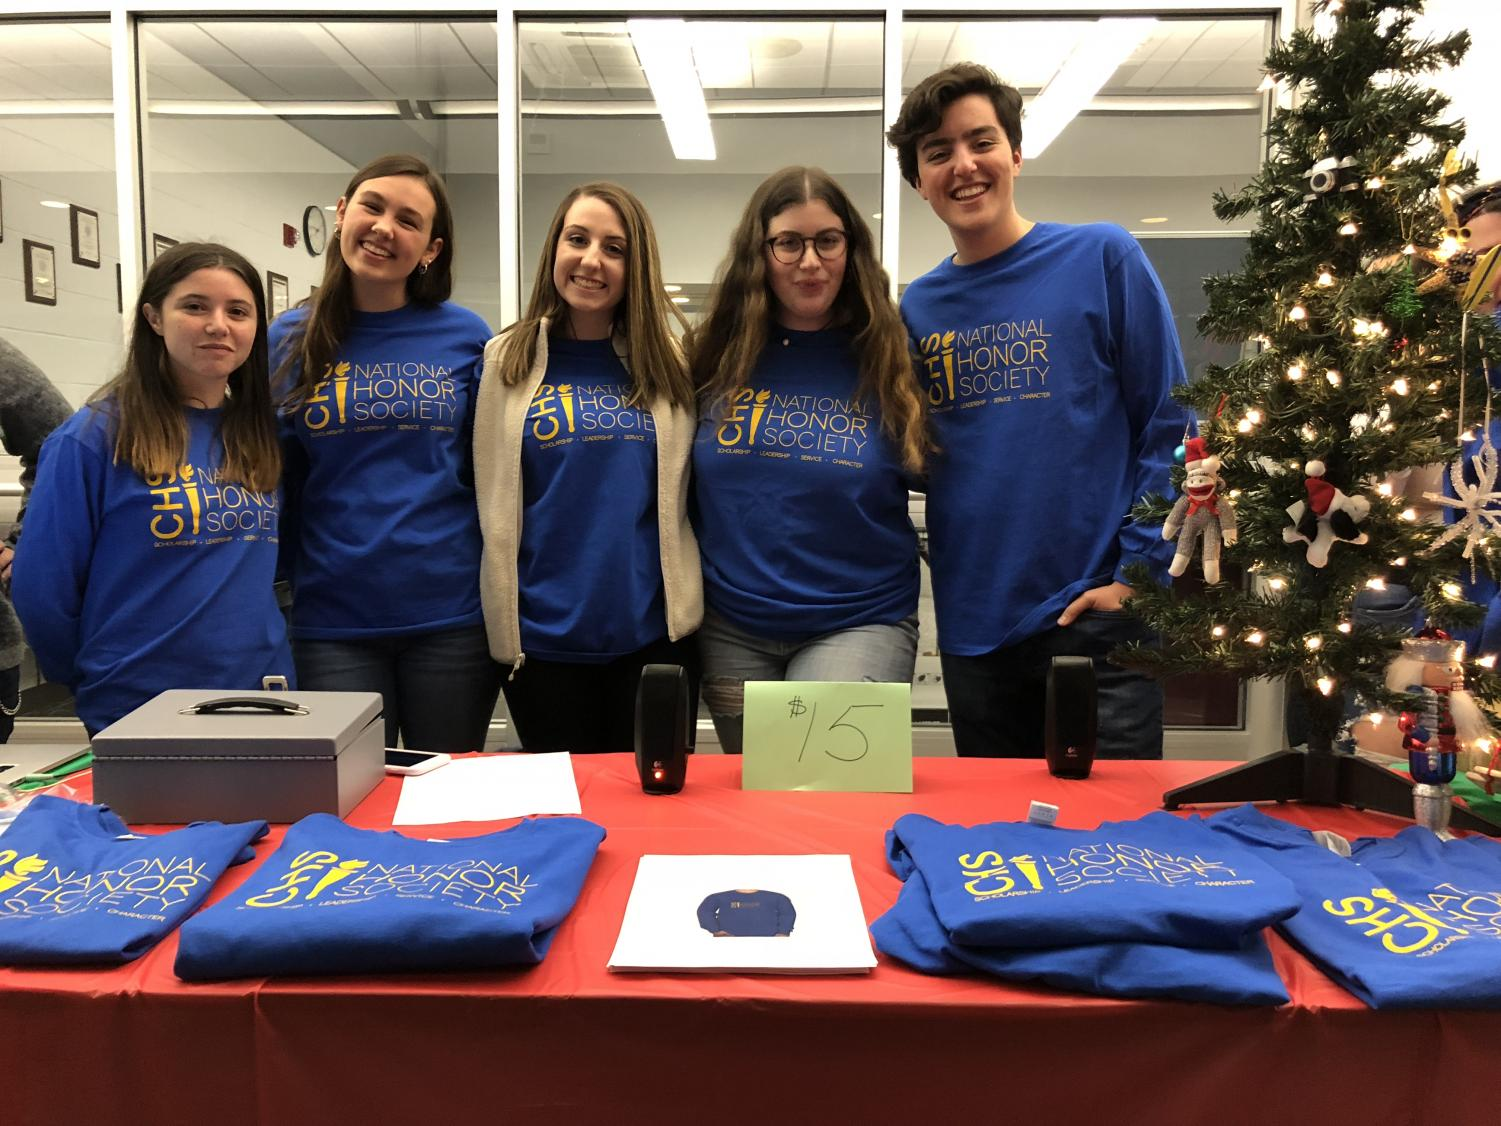 Seniors and NHS members, from left, Emma Farkas of Colts Neck, treasurer Allie Beekman of Neptune, president Jules Andersen of Howell, secretary Tali Petto of Marlboro and Liam Marshall of Sea Girt represented the National Honor Society (NHS) at Mingle & Jingle. NHS sold t-shirts and played Christmas music at the event.